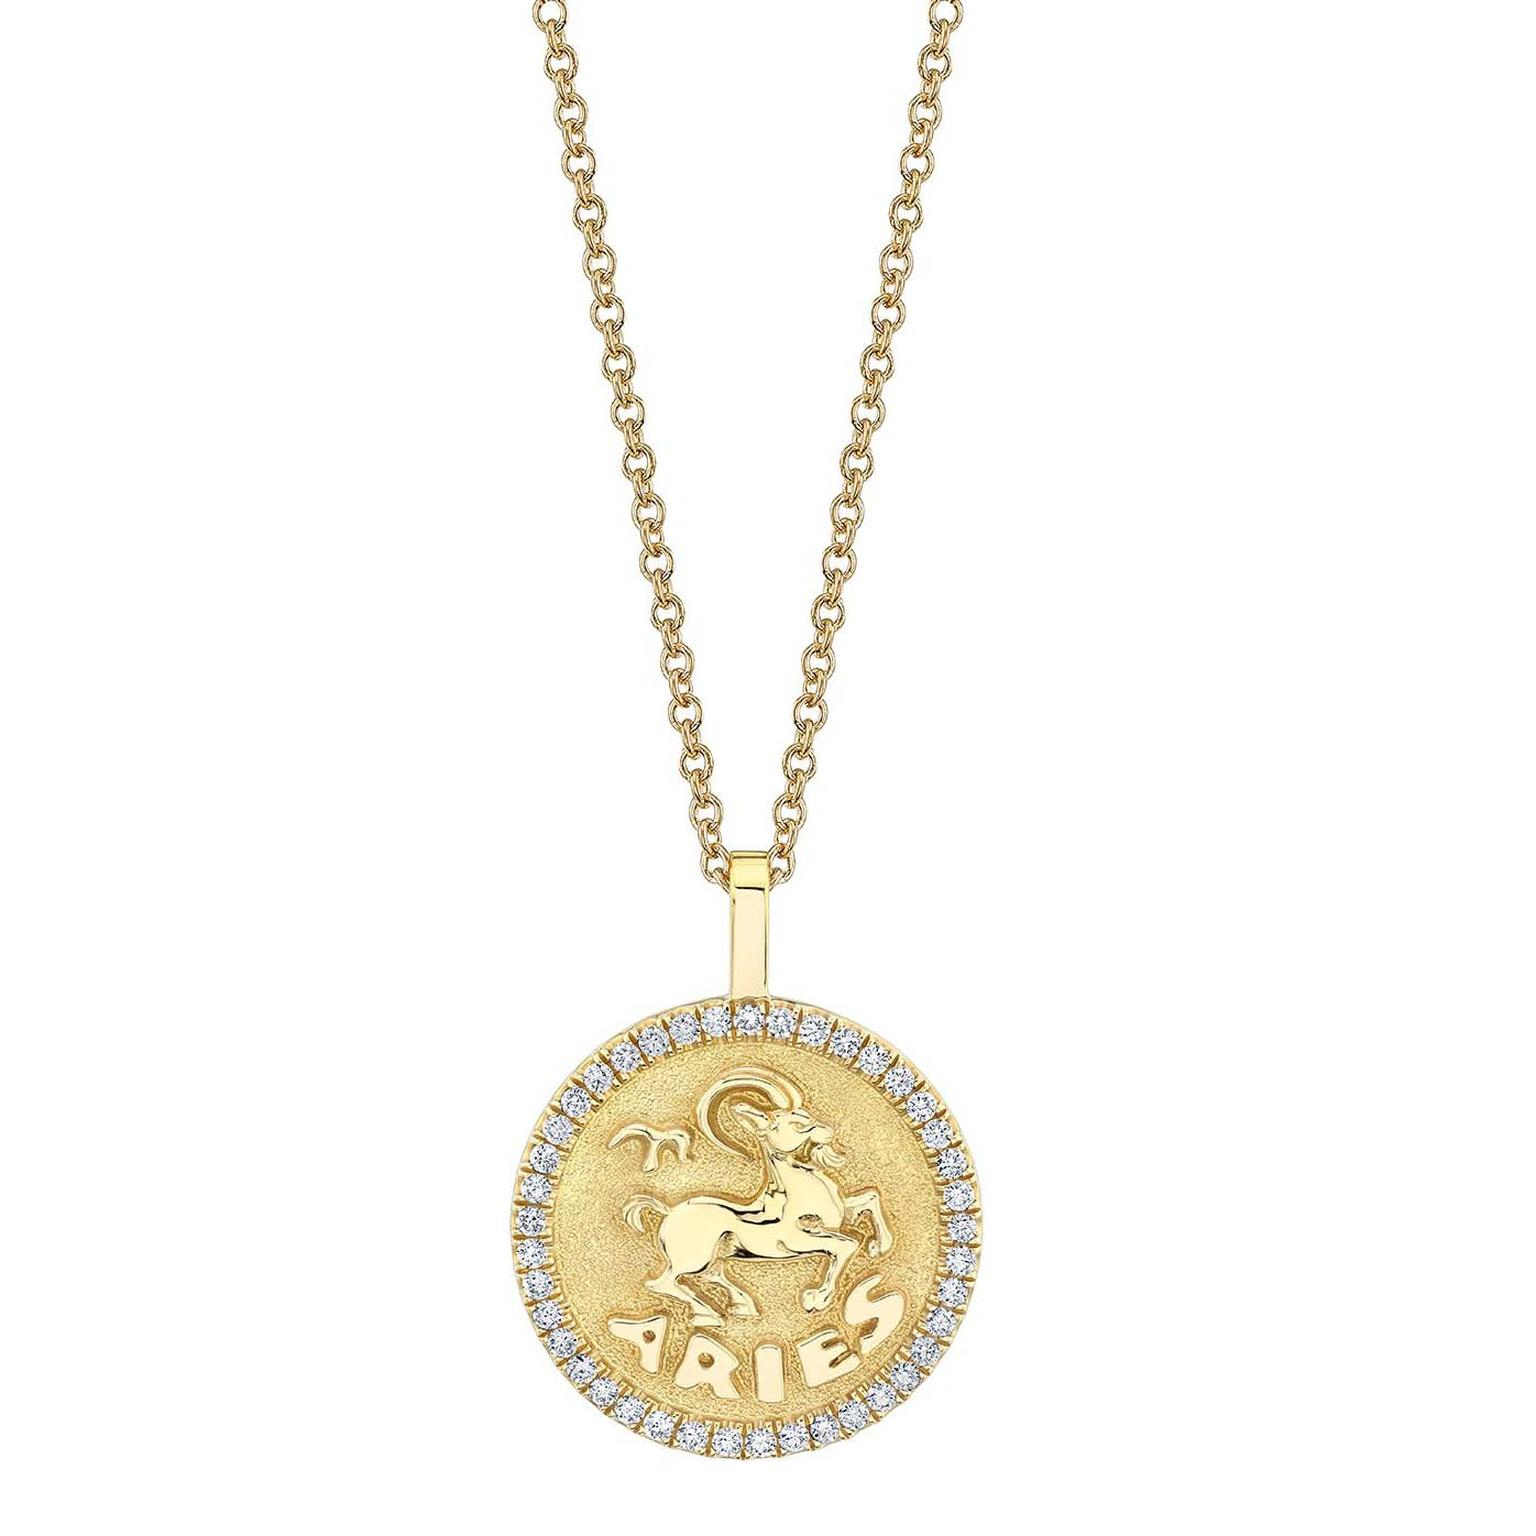 Anita Ko Zodiac coin medallion necklace